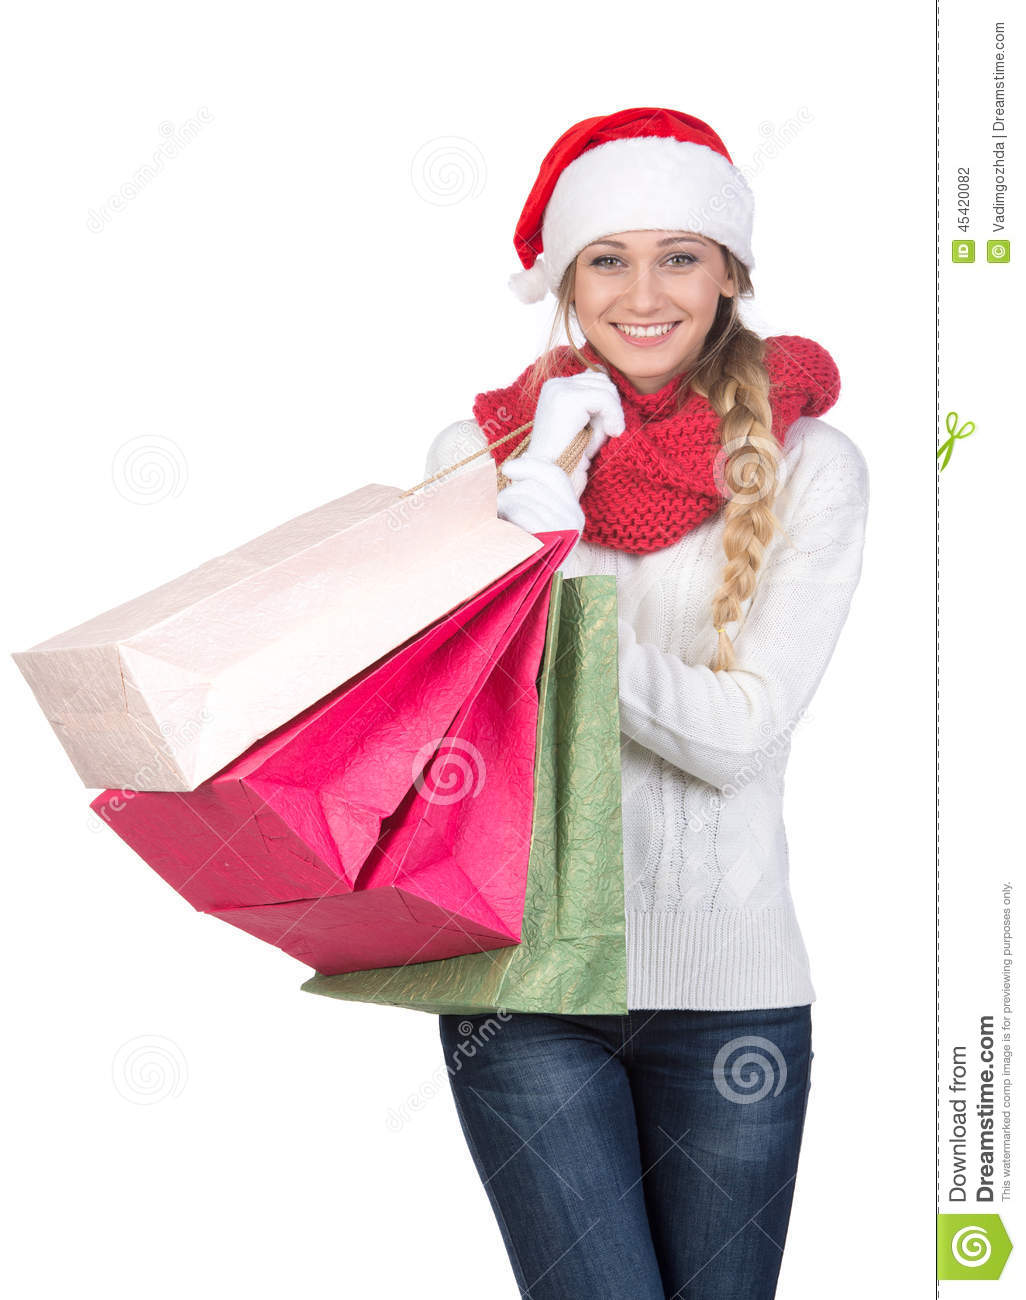 Christmas women stock photo. Image of attractive, isolated - 45420082